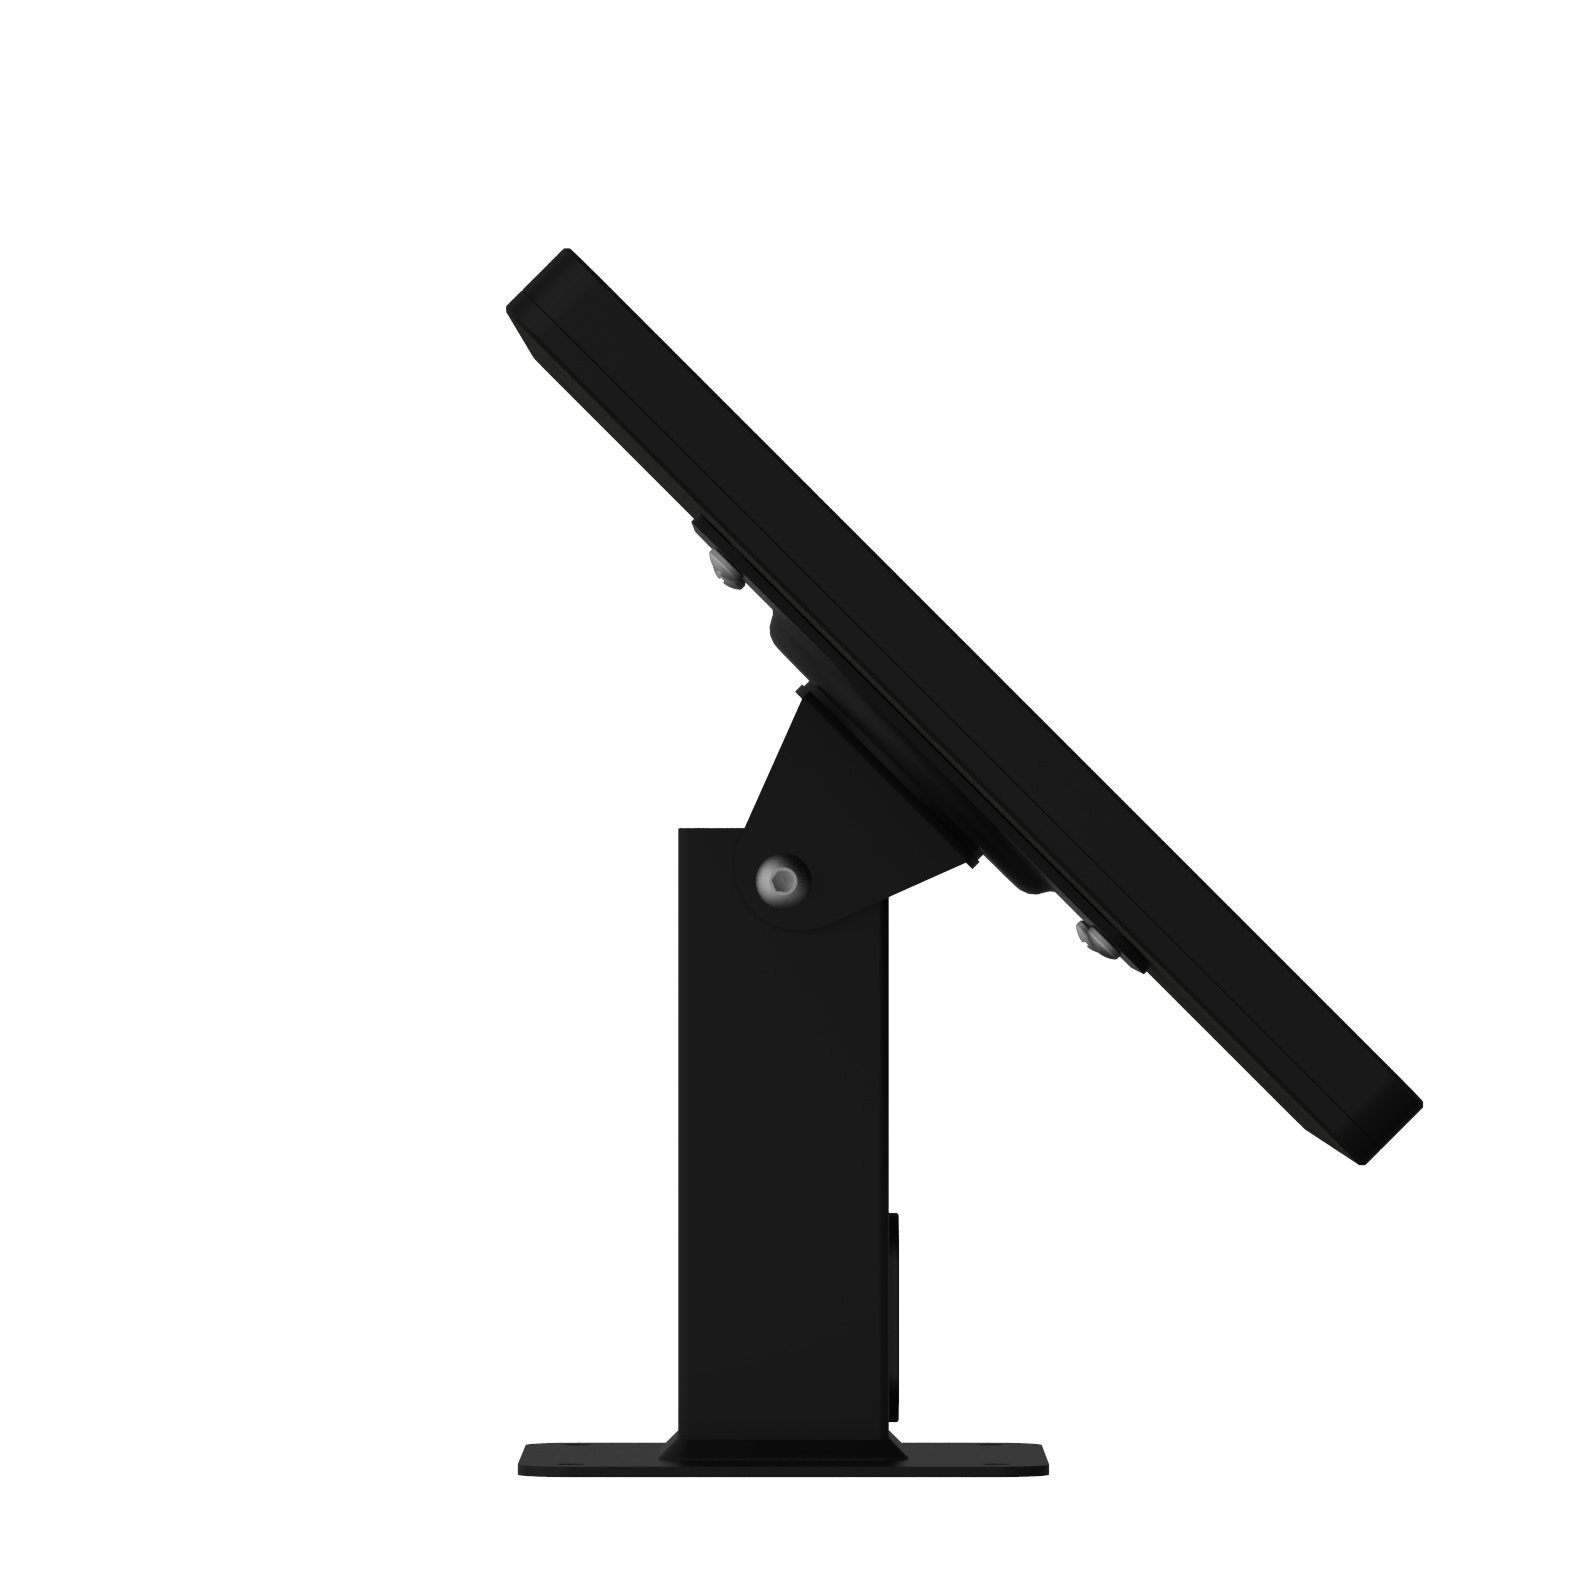 iPad (5th Gen) 9.7/Pro, Air 1/2 Black Covered Home Button Rotating & Tilting Desk/Table Mount [Bundle] by VidaMount (Image #3)